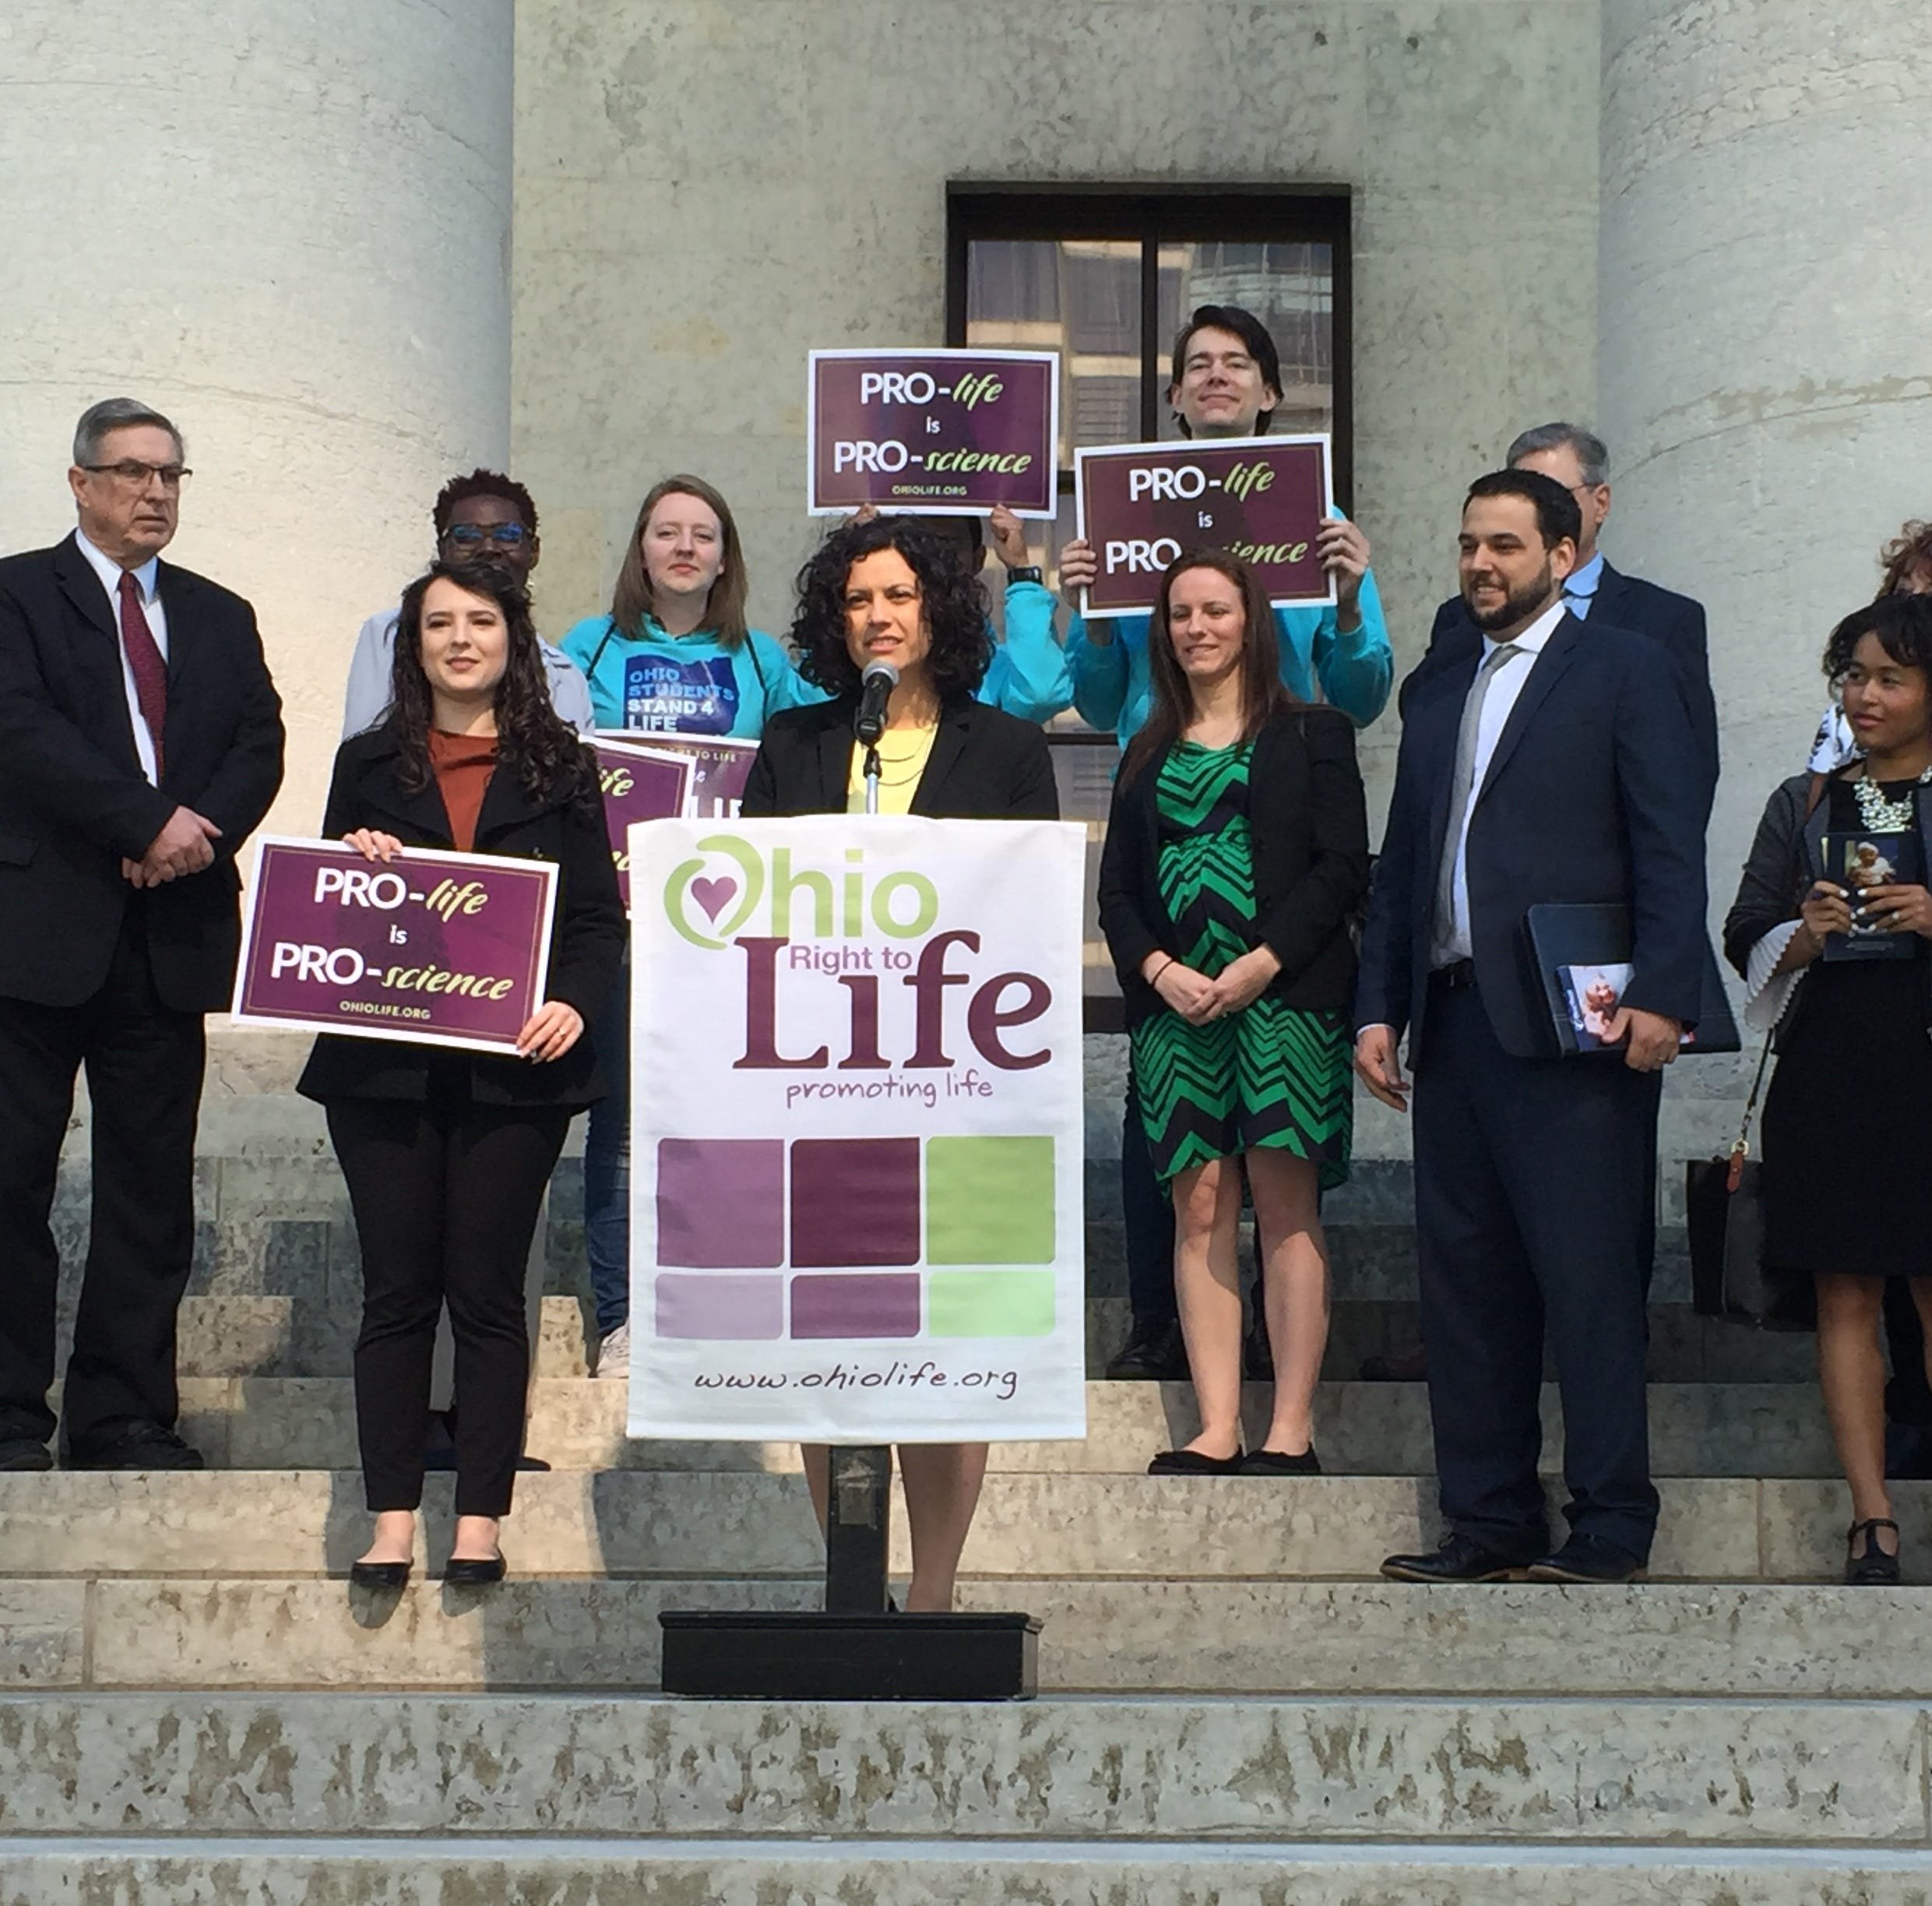 """Ohio Right to Life introduces their proposal to require women be informed of abortion """"reversal"""" methods. Opponents say the option is unproven by science."""